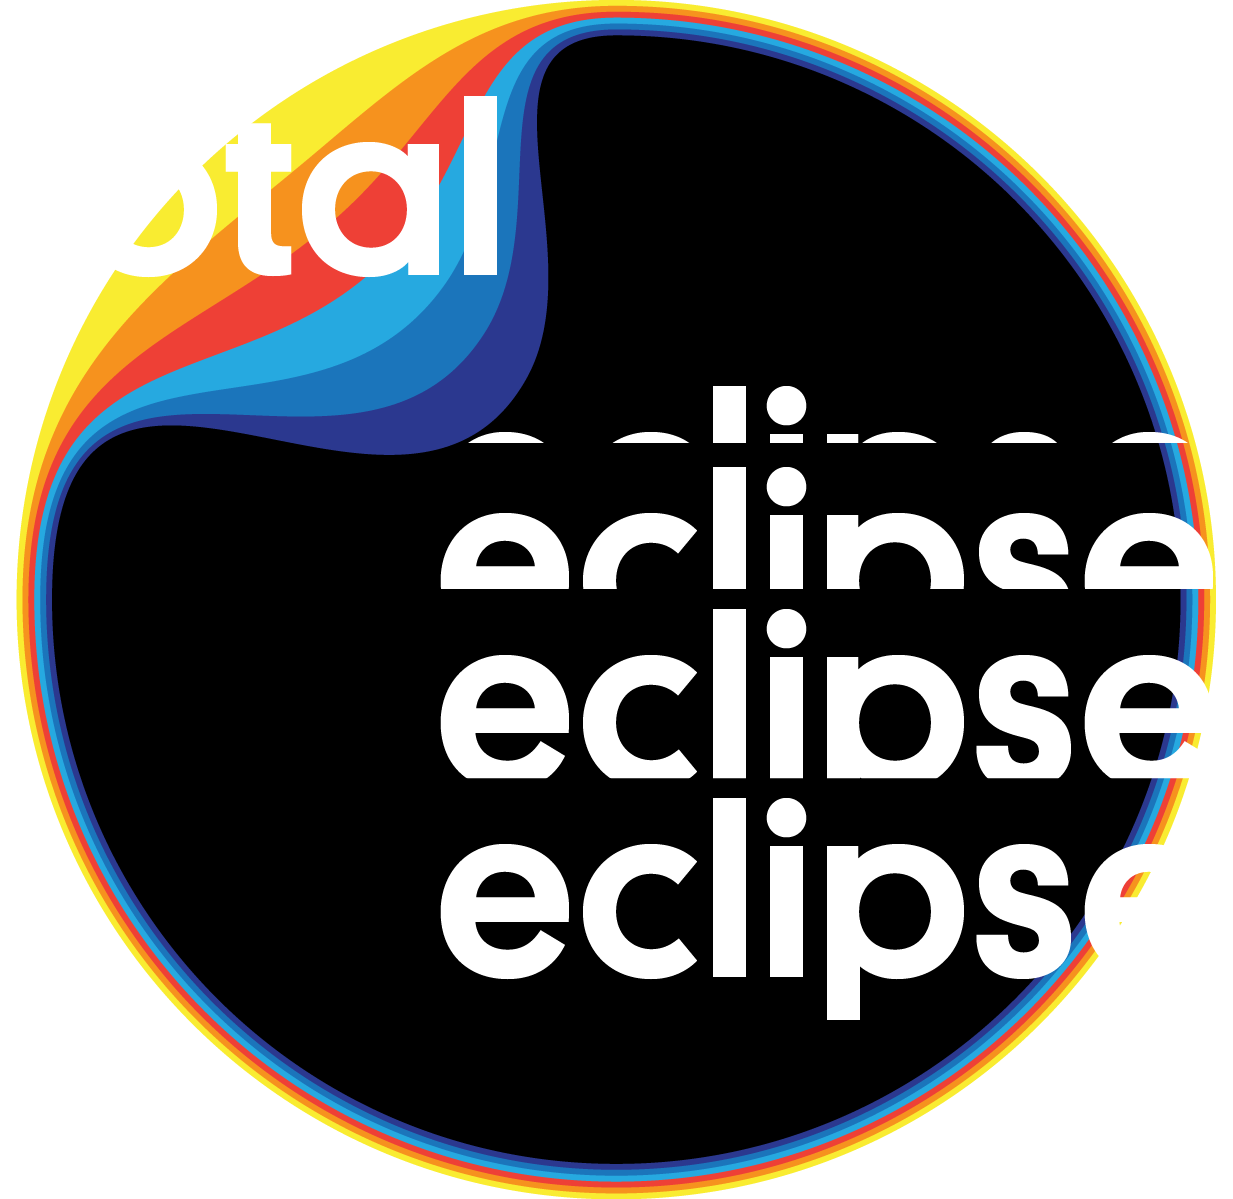 Free clipart total eclipse of the sun vector library stock Oregon Solar Eclipse Festival: August 19-21, 2017 vector library stock